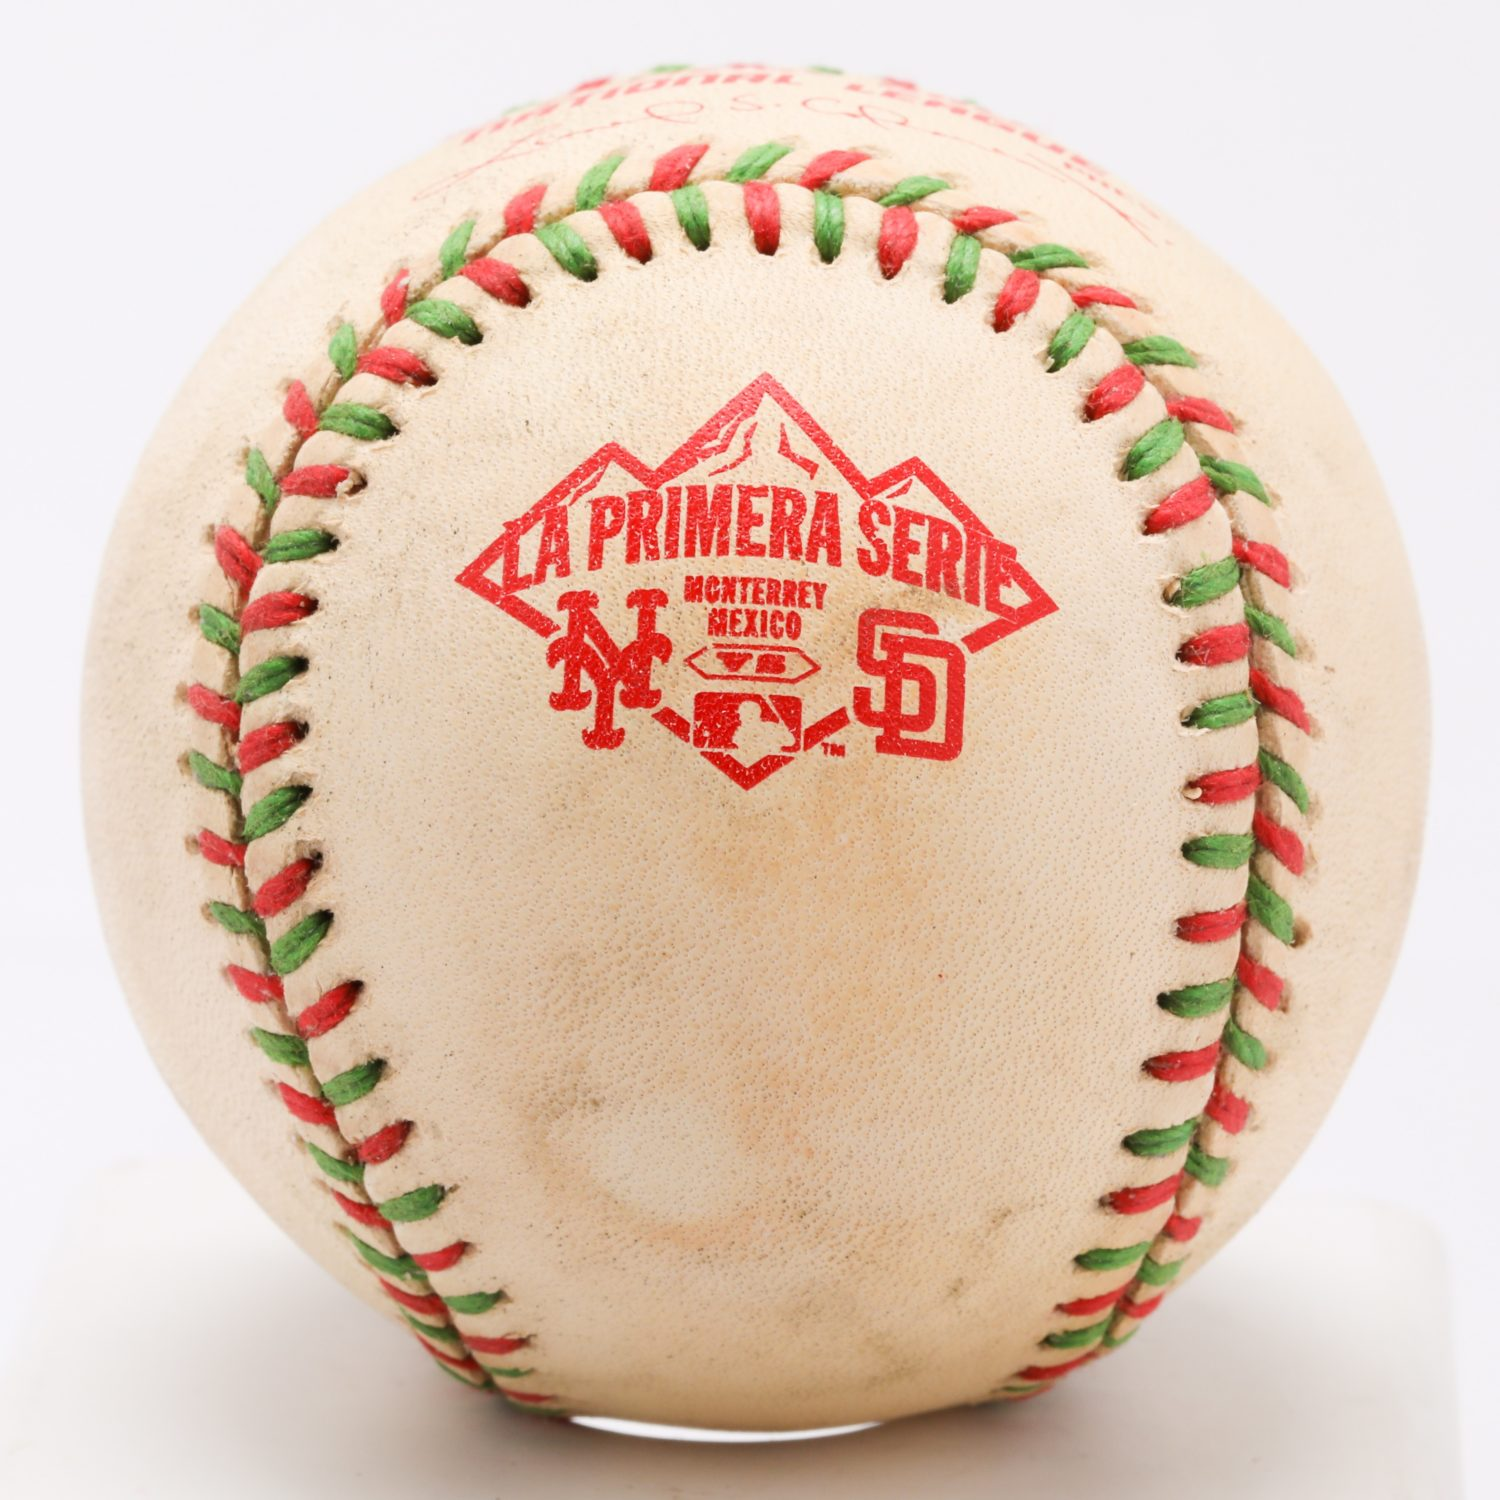 Baseball with Red and Green Stitching Used in La Primera Serie